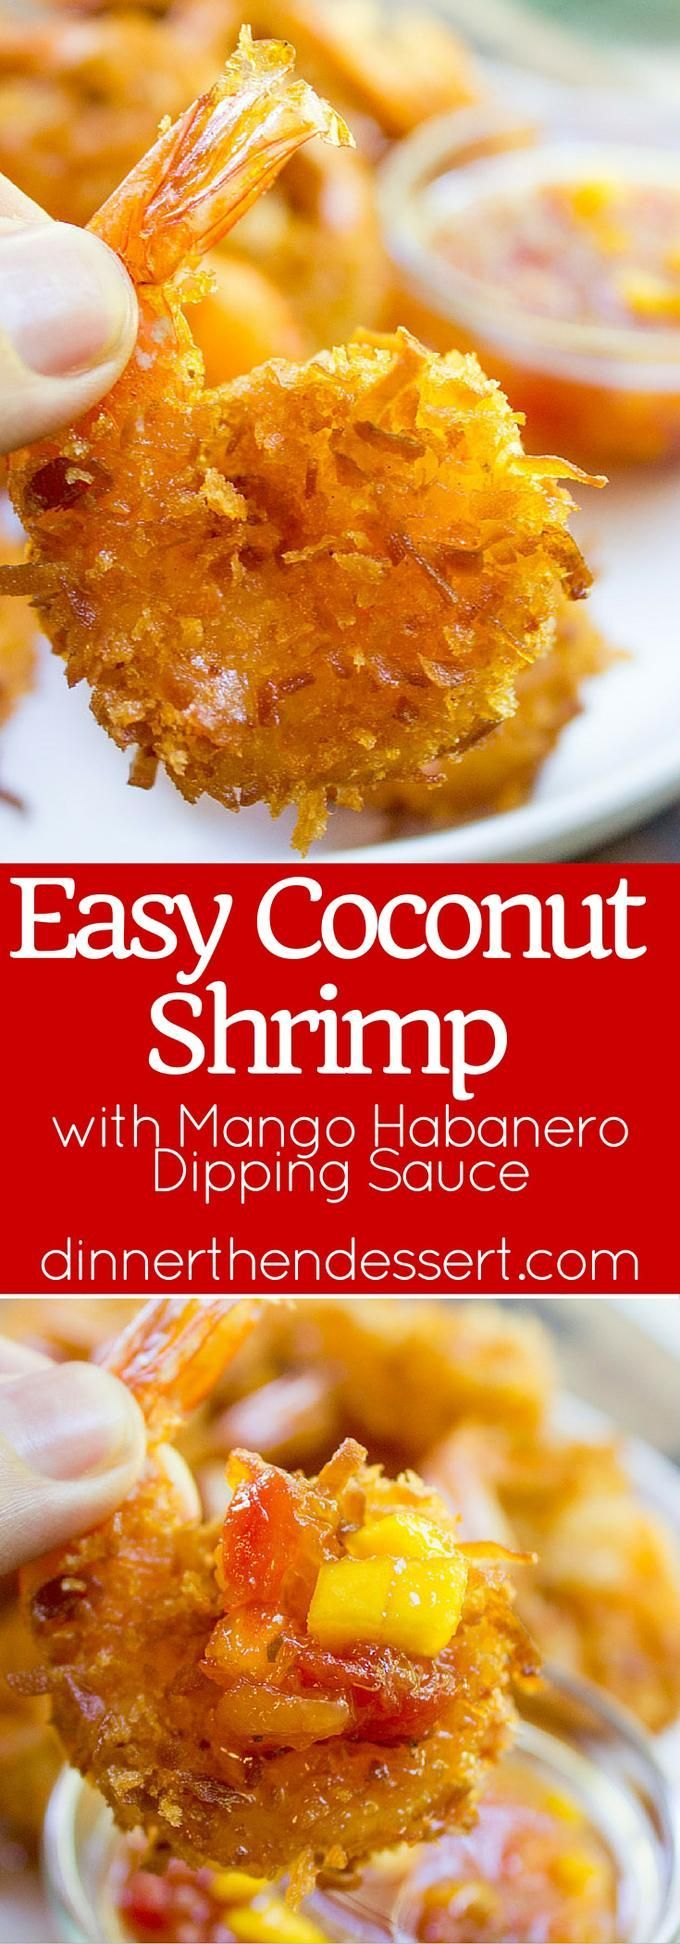 Coconut Shrimp with Sweet and Spicy Mango Habanero Dipping Sauce makes the perfect appetizer for your summer get-together and it's quick and easy! @LaVictoriaBrand ad